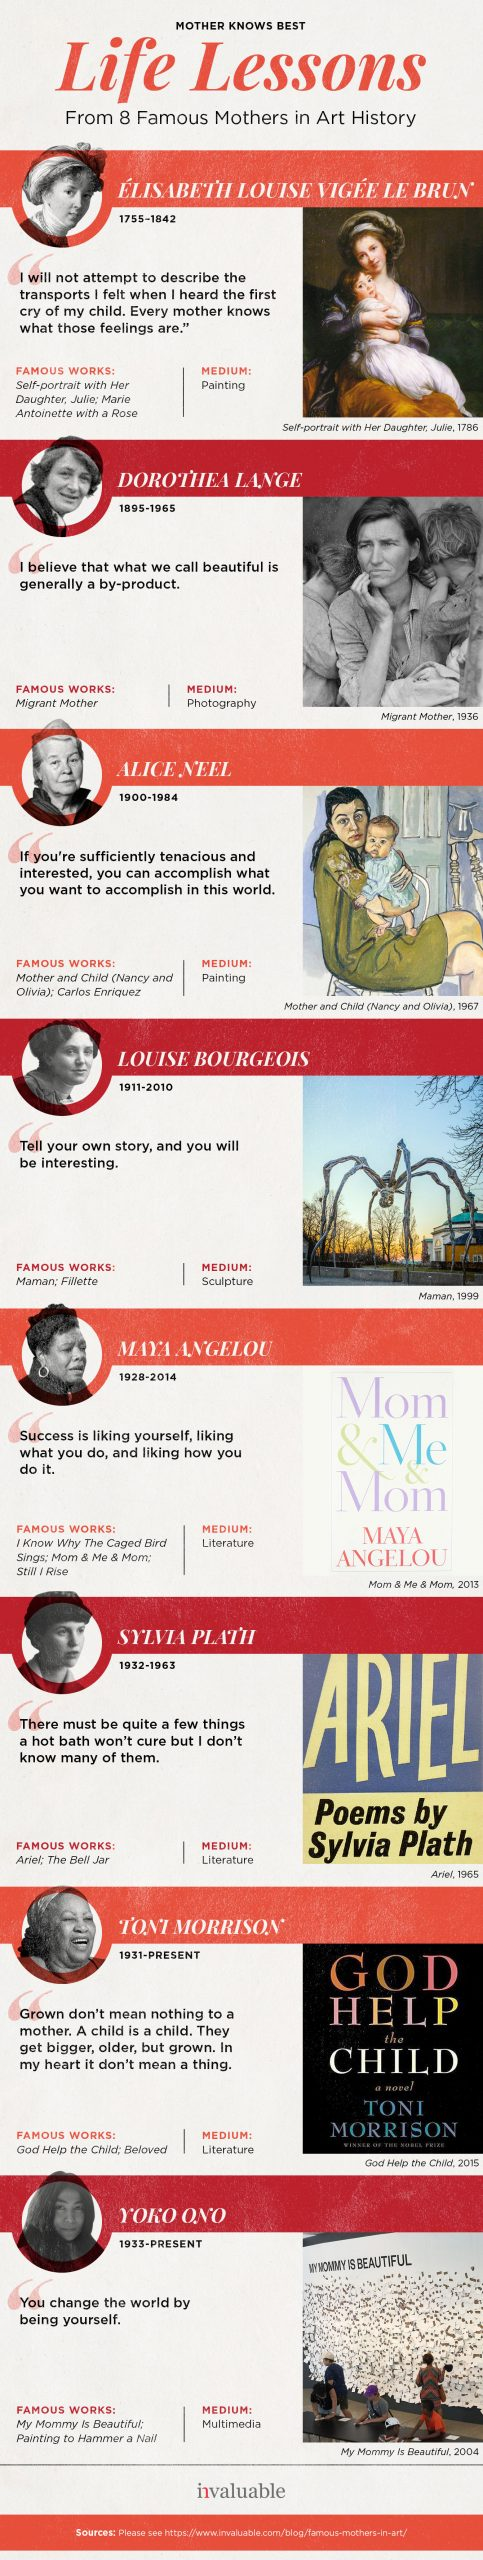 life lessons from mothers